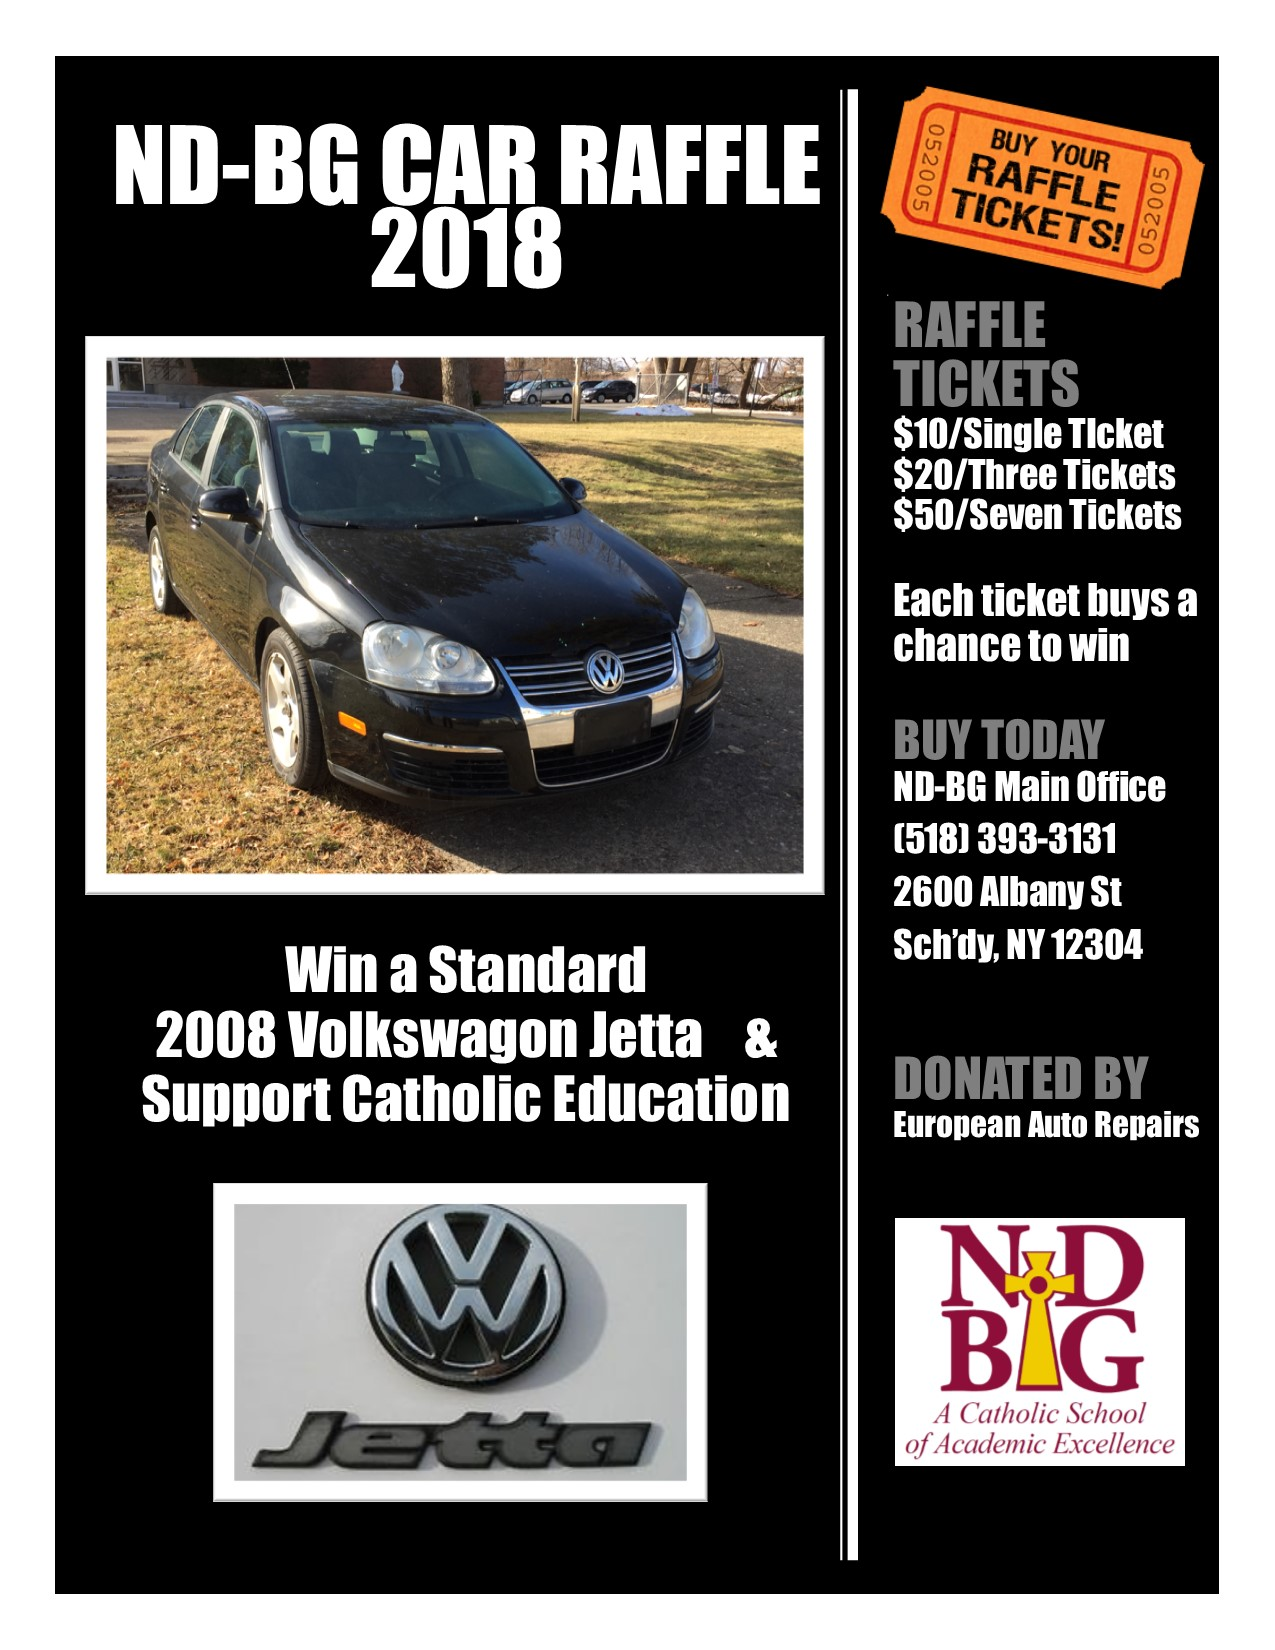 Car Raffle 2018 Details - Buy Your Tickets Today